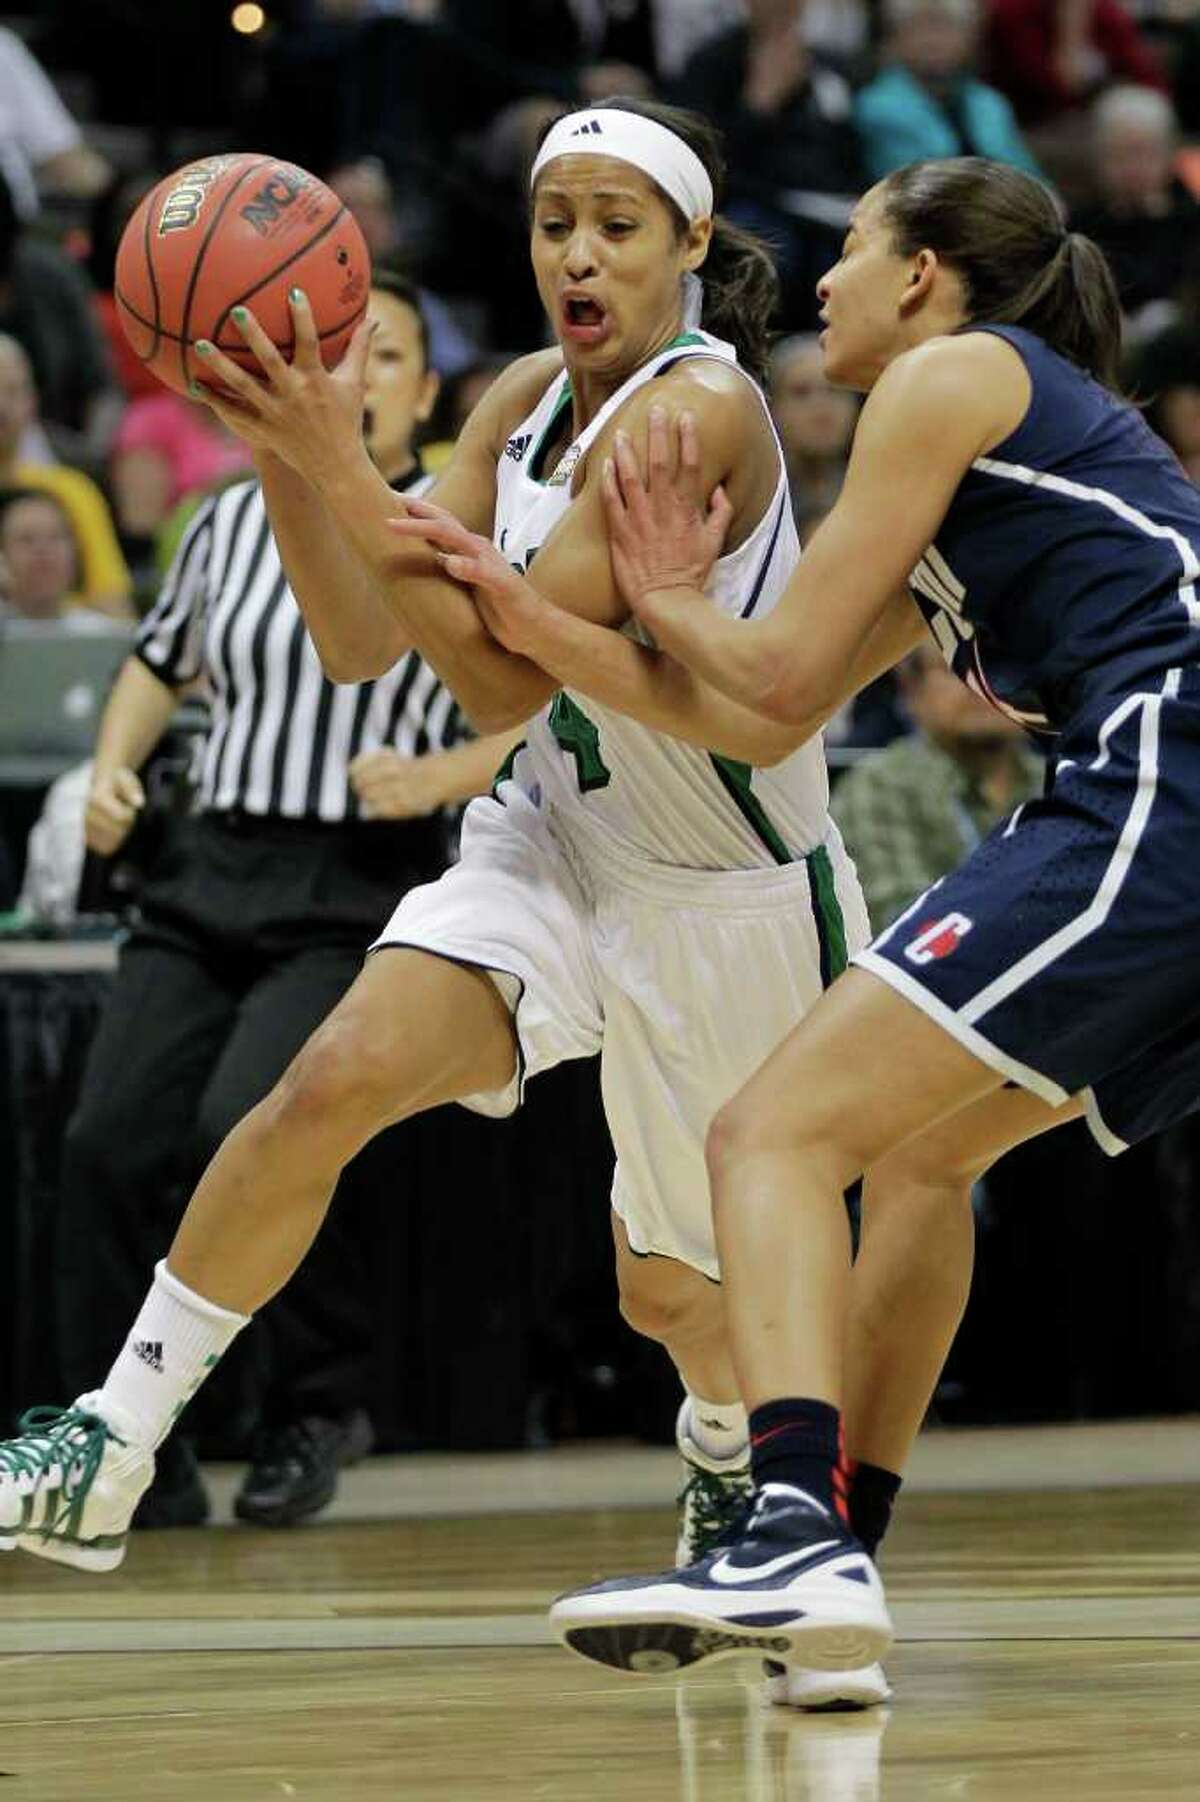 Notre Dame guard Skylar Diggins piloted the Irish to this stage last season, losing the final to Texas A&M.